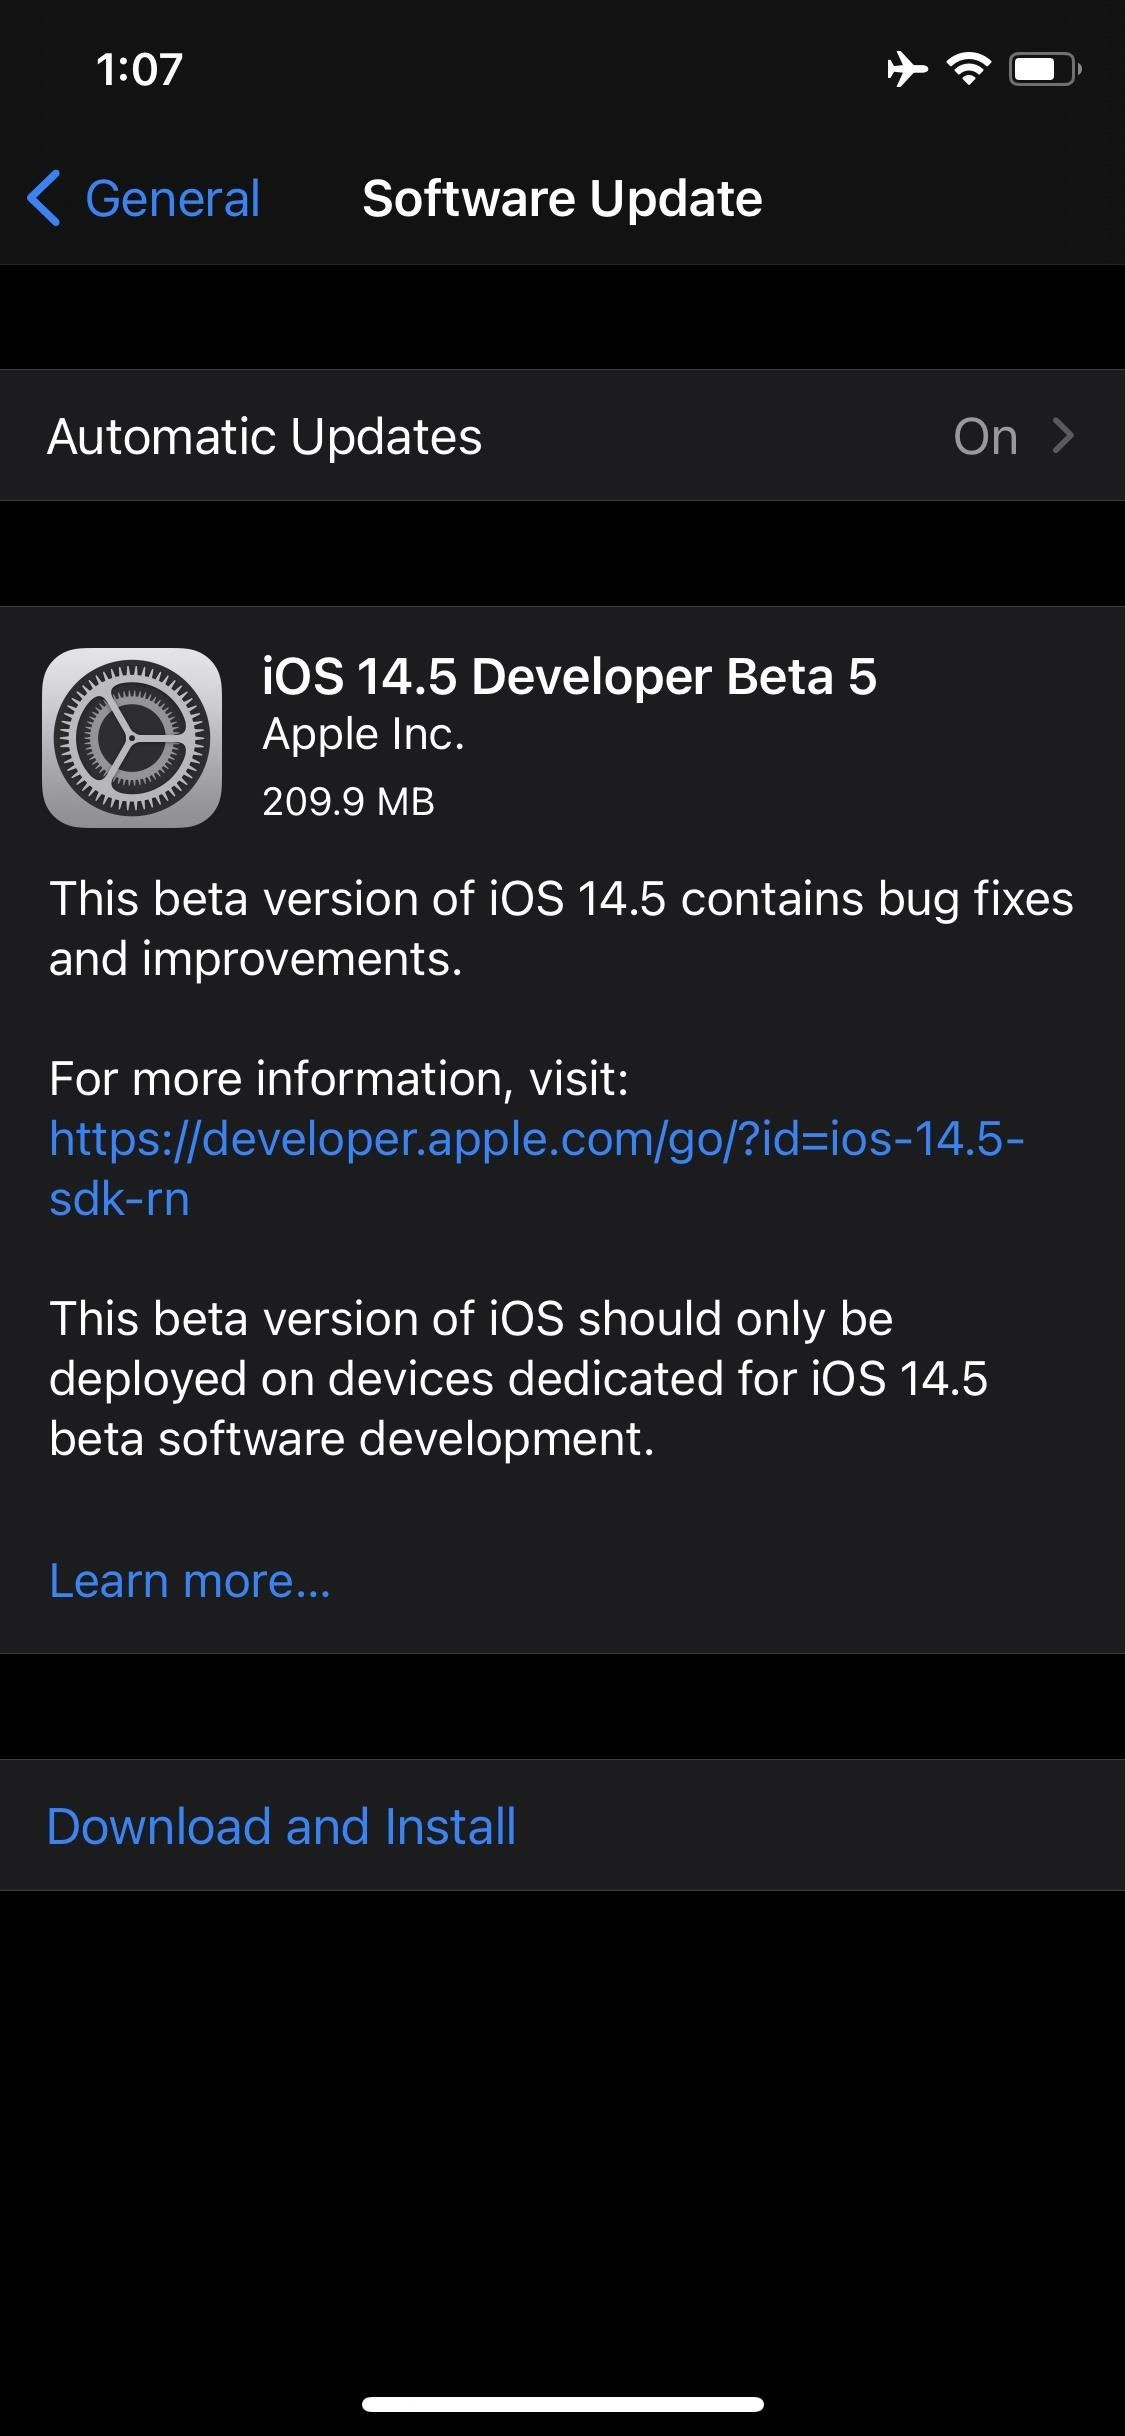 Apple's iOS 14.5 Developer Beta 5 Available for iPhone